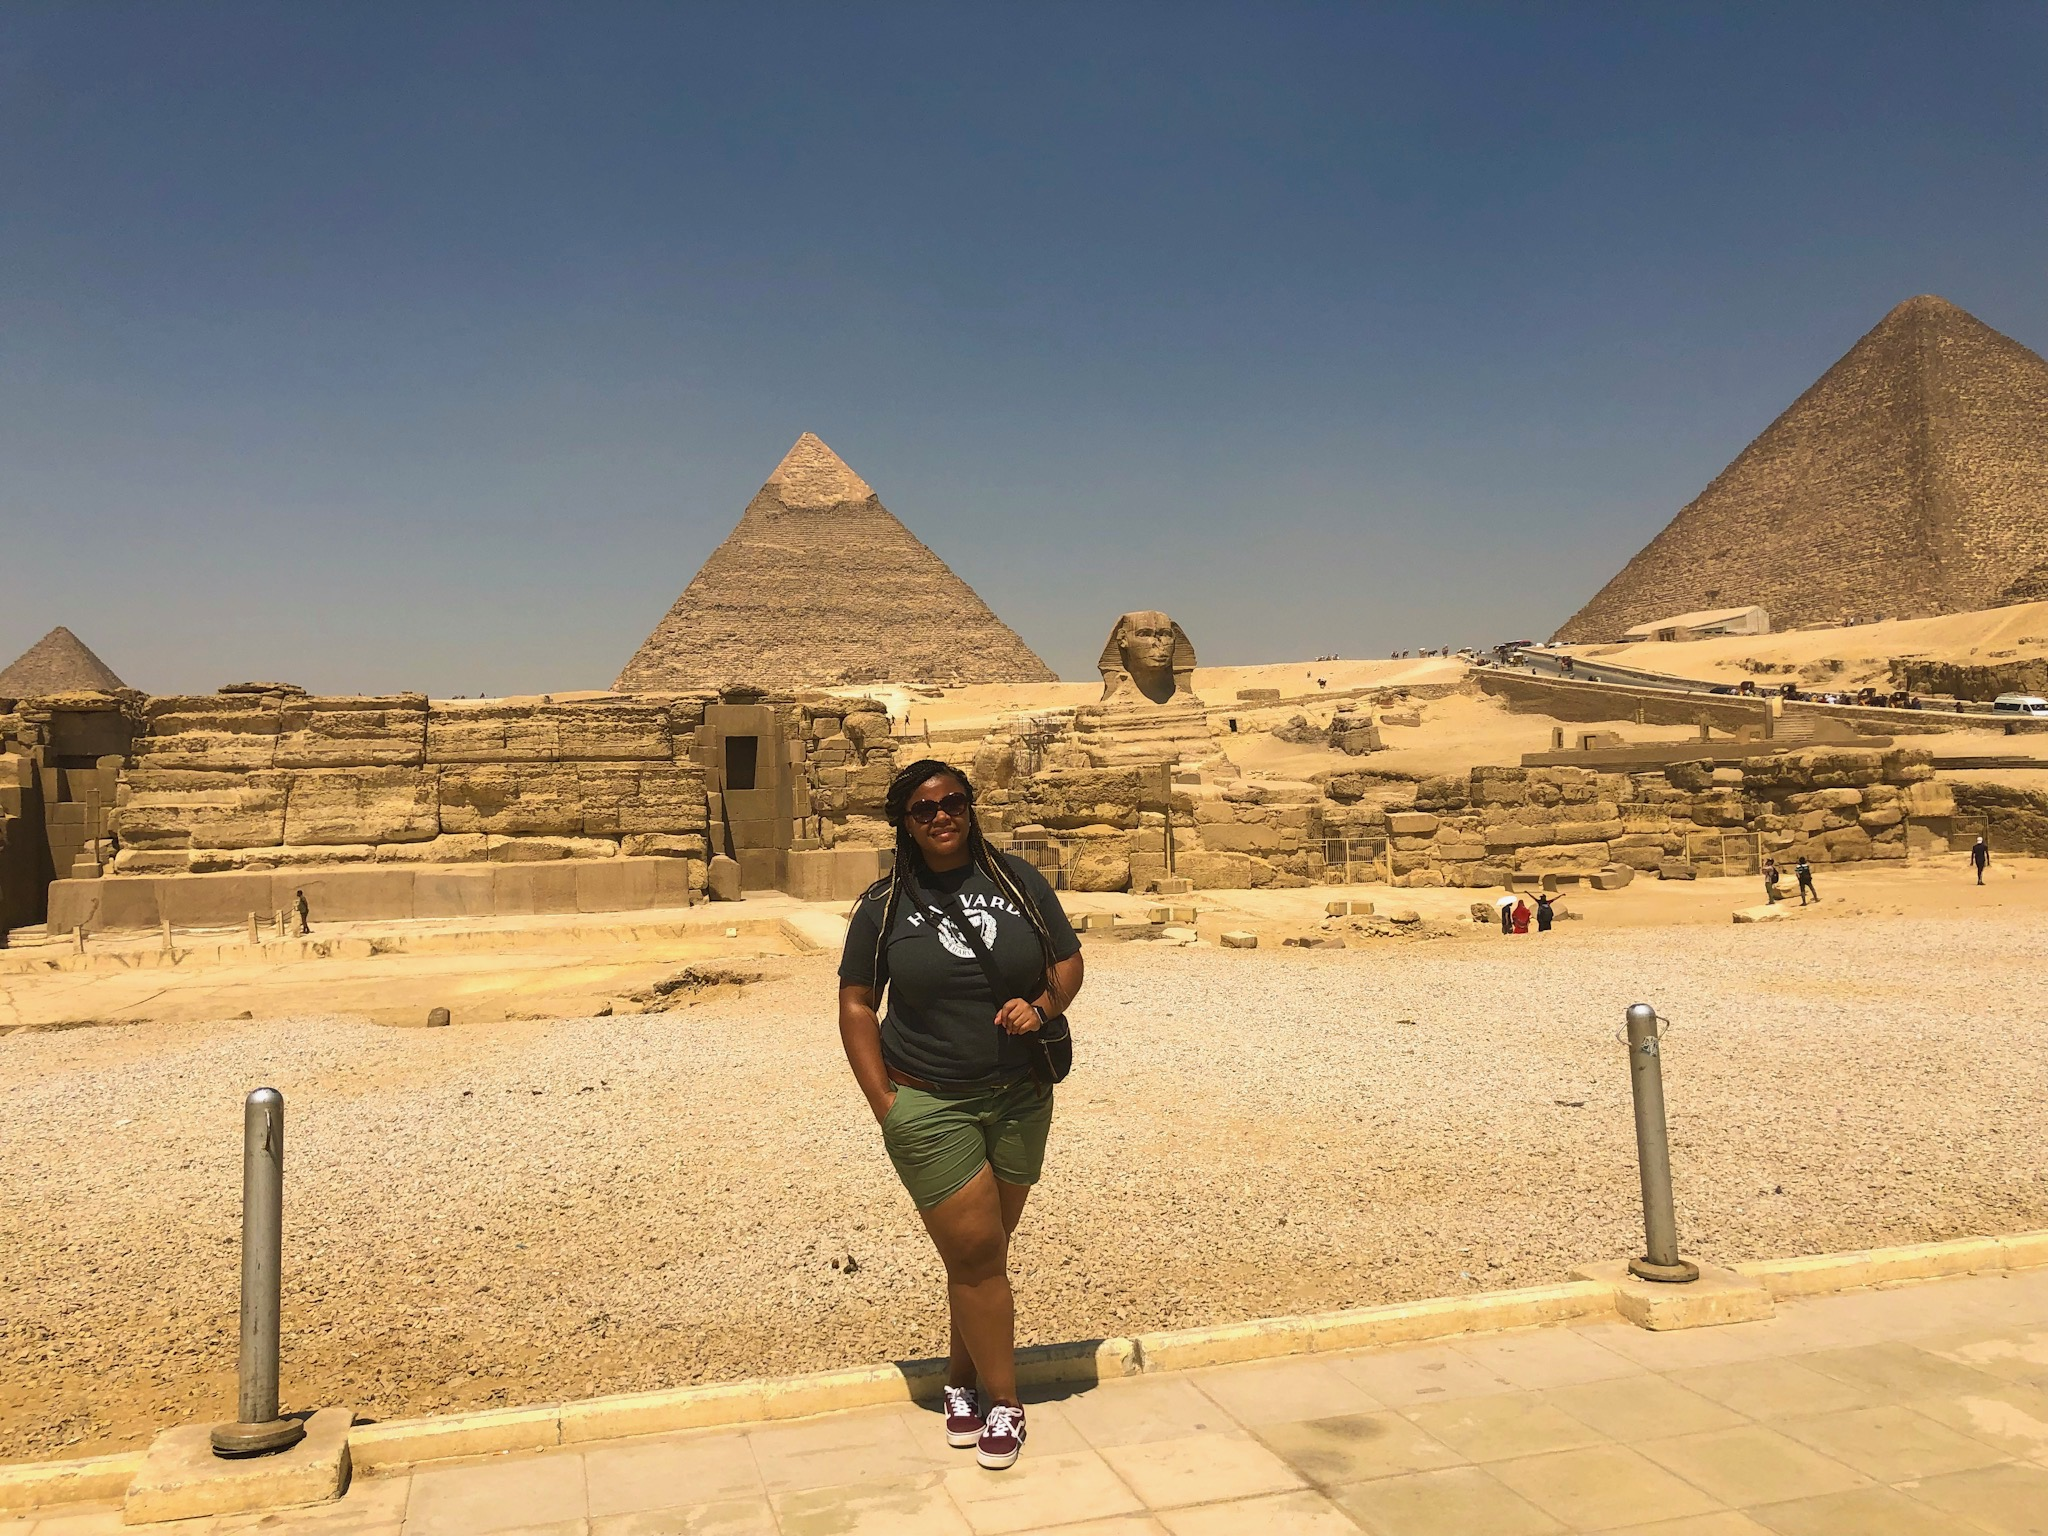 Picture wit The Sphinx at the Pyramids of Giza.